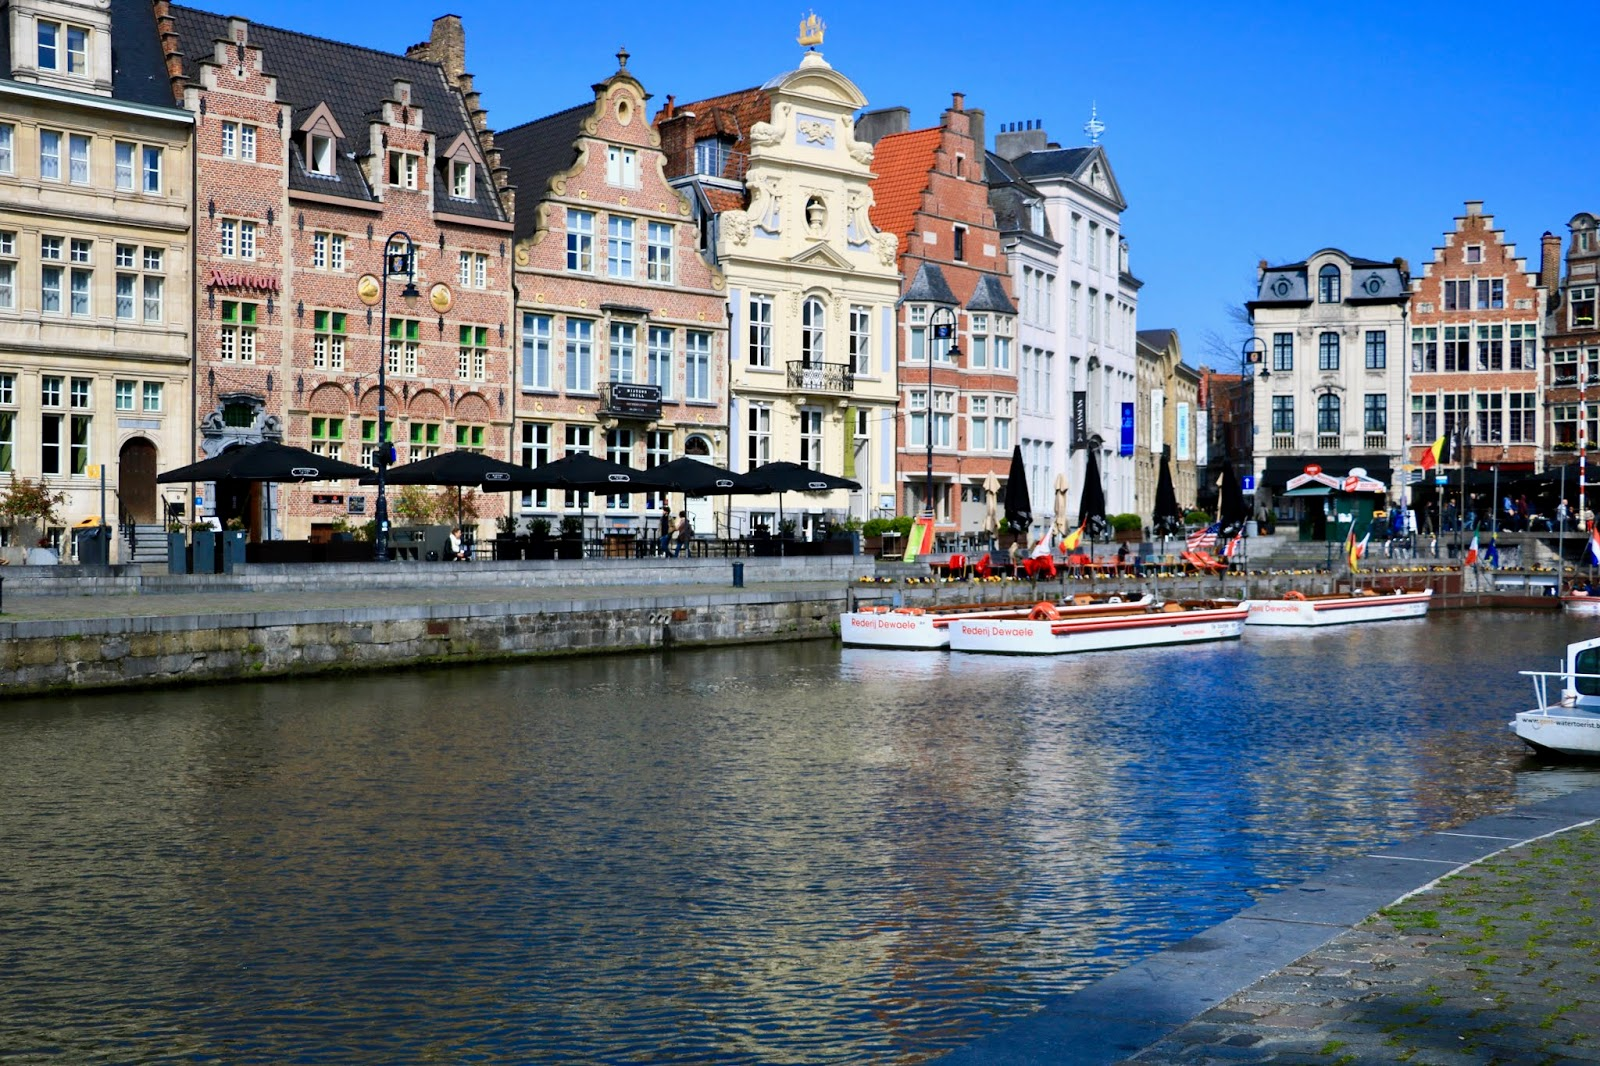 The Lys River in Ghent, Belgium in April 2019